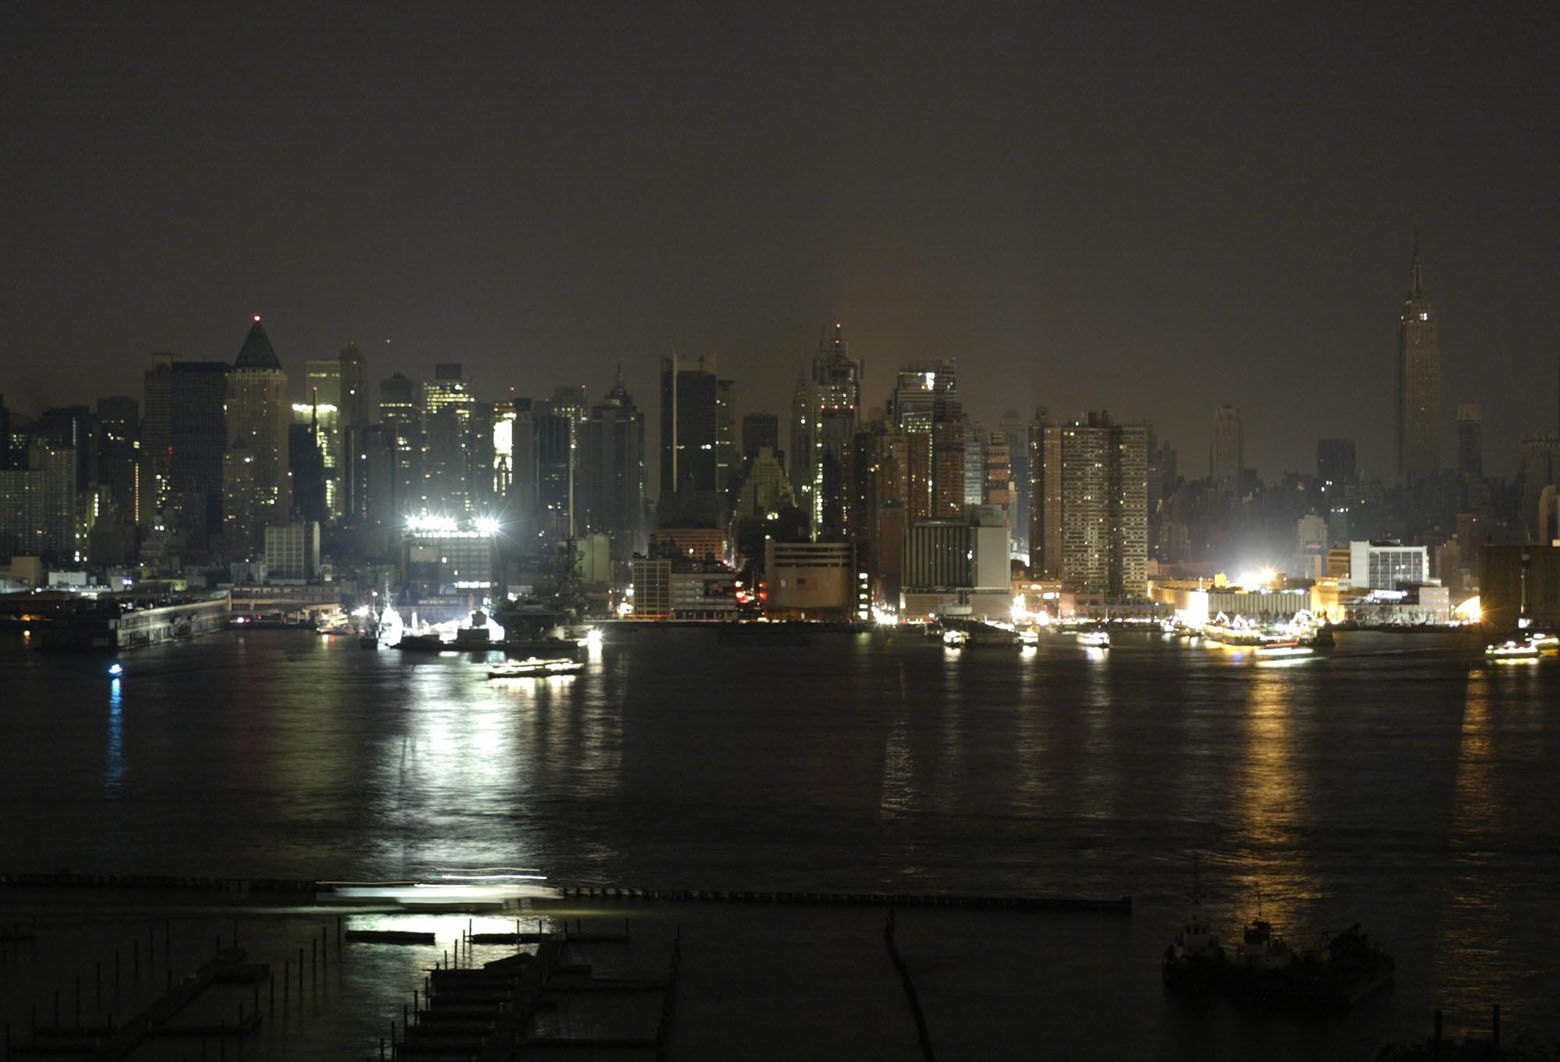 A view of the Upper West side of Manhattan is seen from  Weehawken, N.J., Thursday, Aug. 14, 2003. A massive power blackout hit U.S. and Canadian cities Thursday. (AP Photo/George Widman)